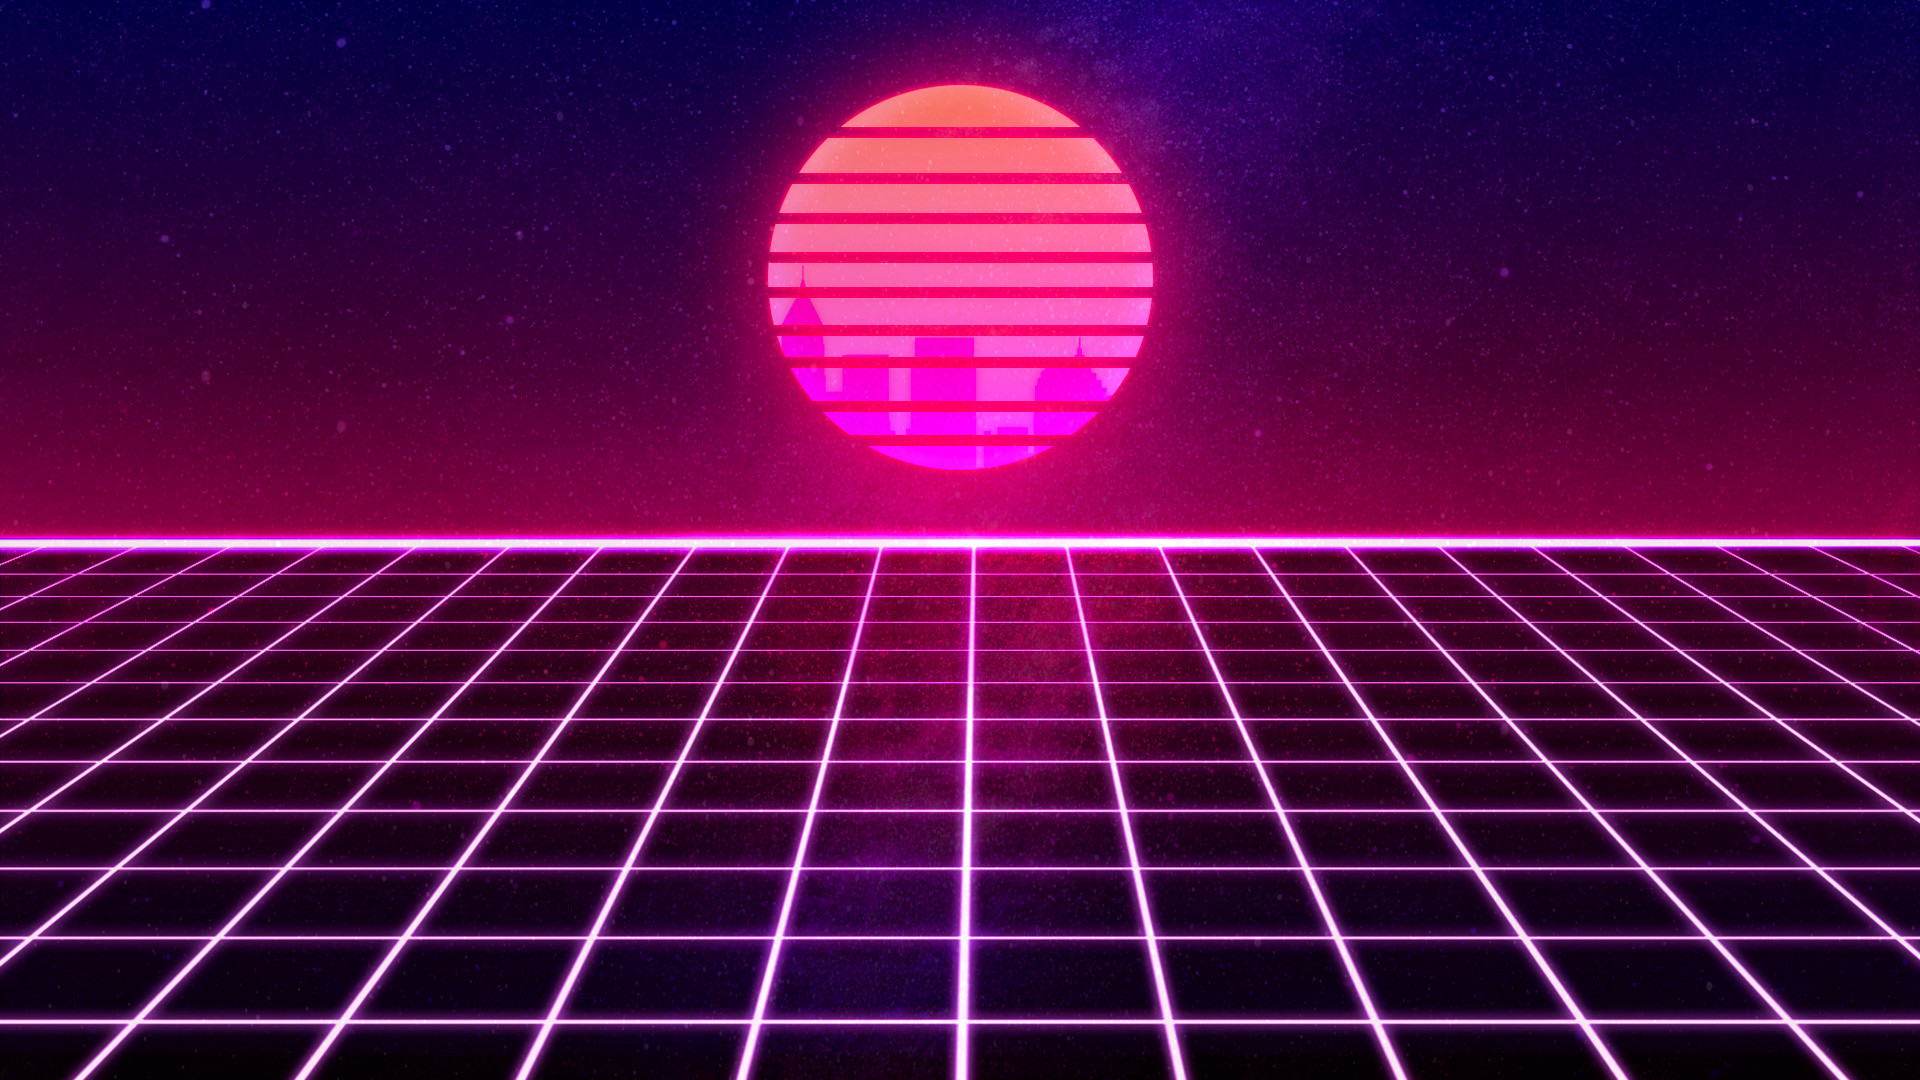 Retro Wallpaper 60 Images